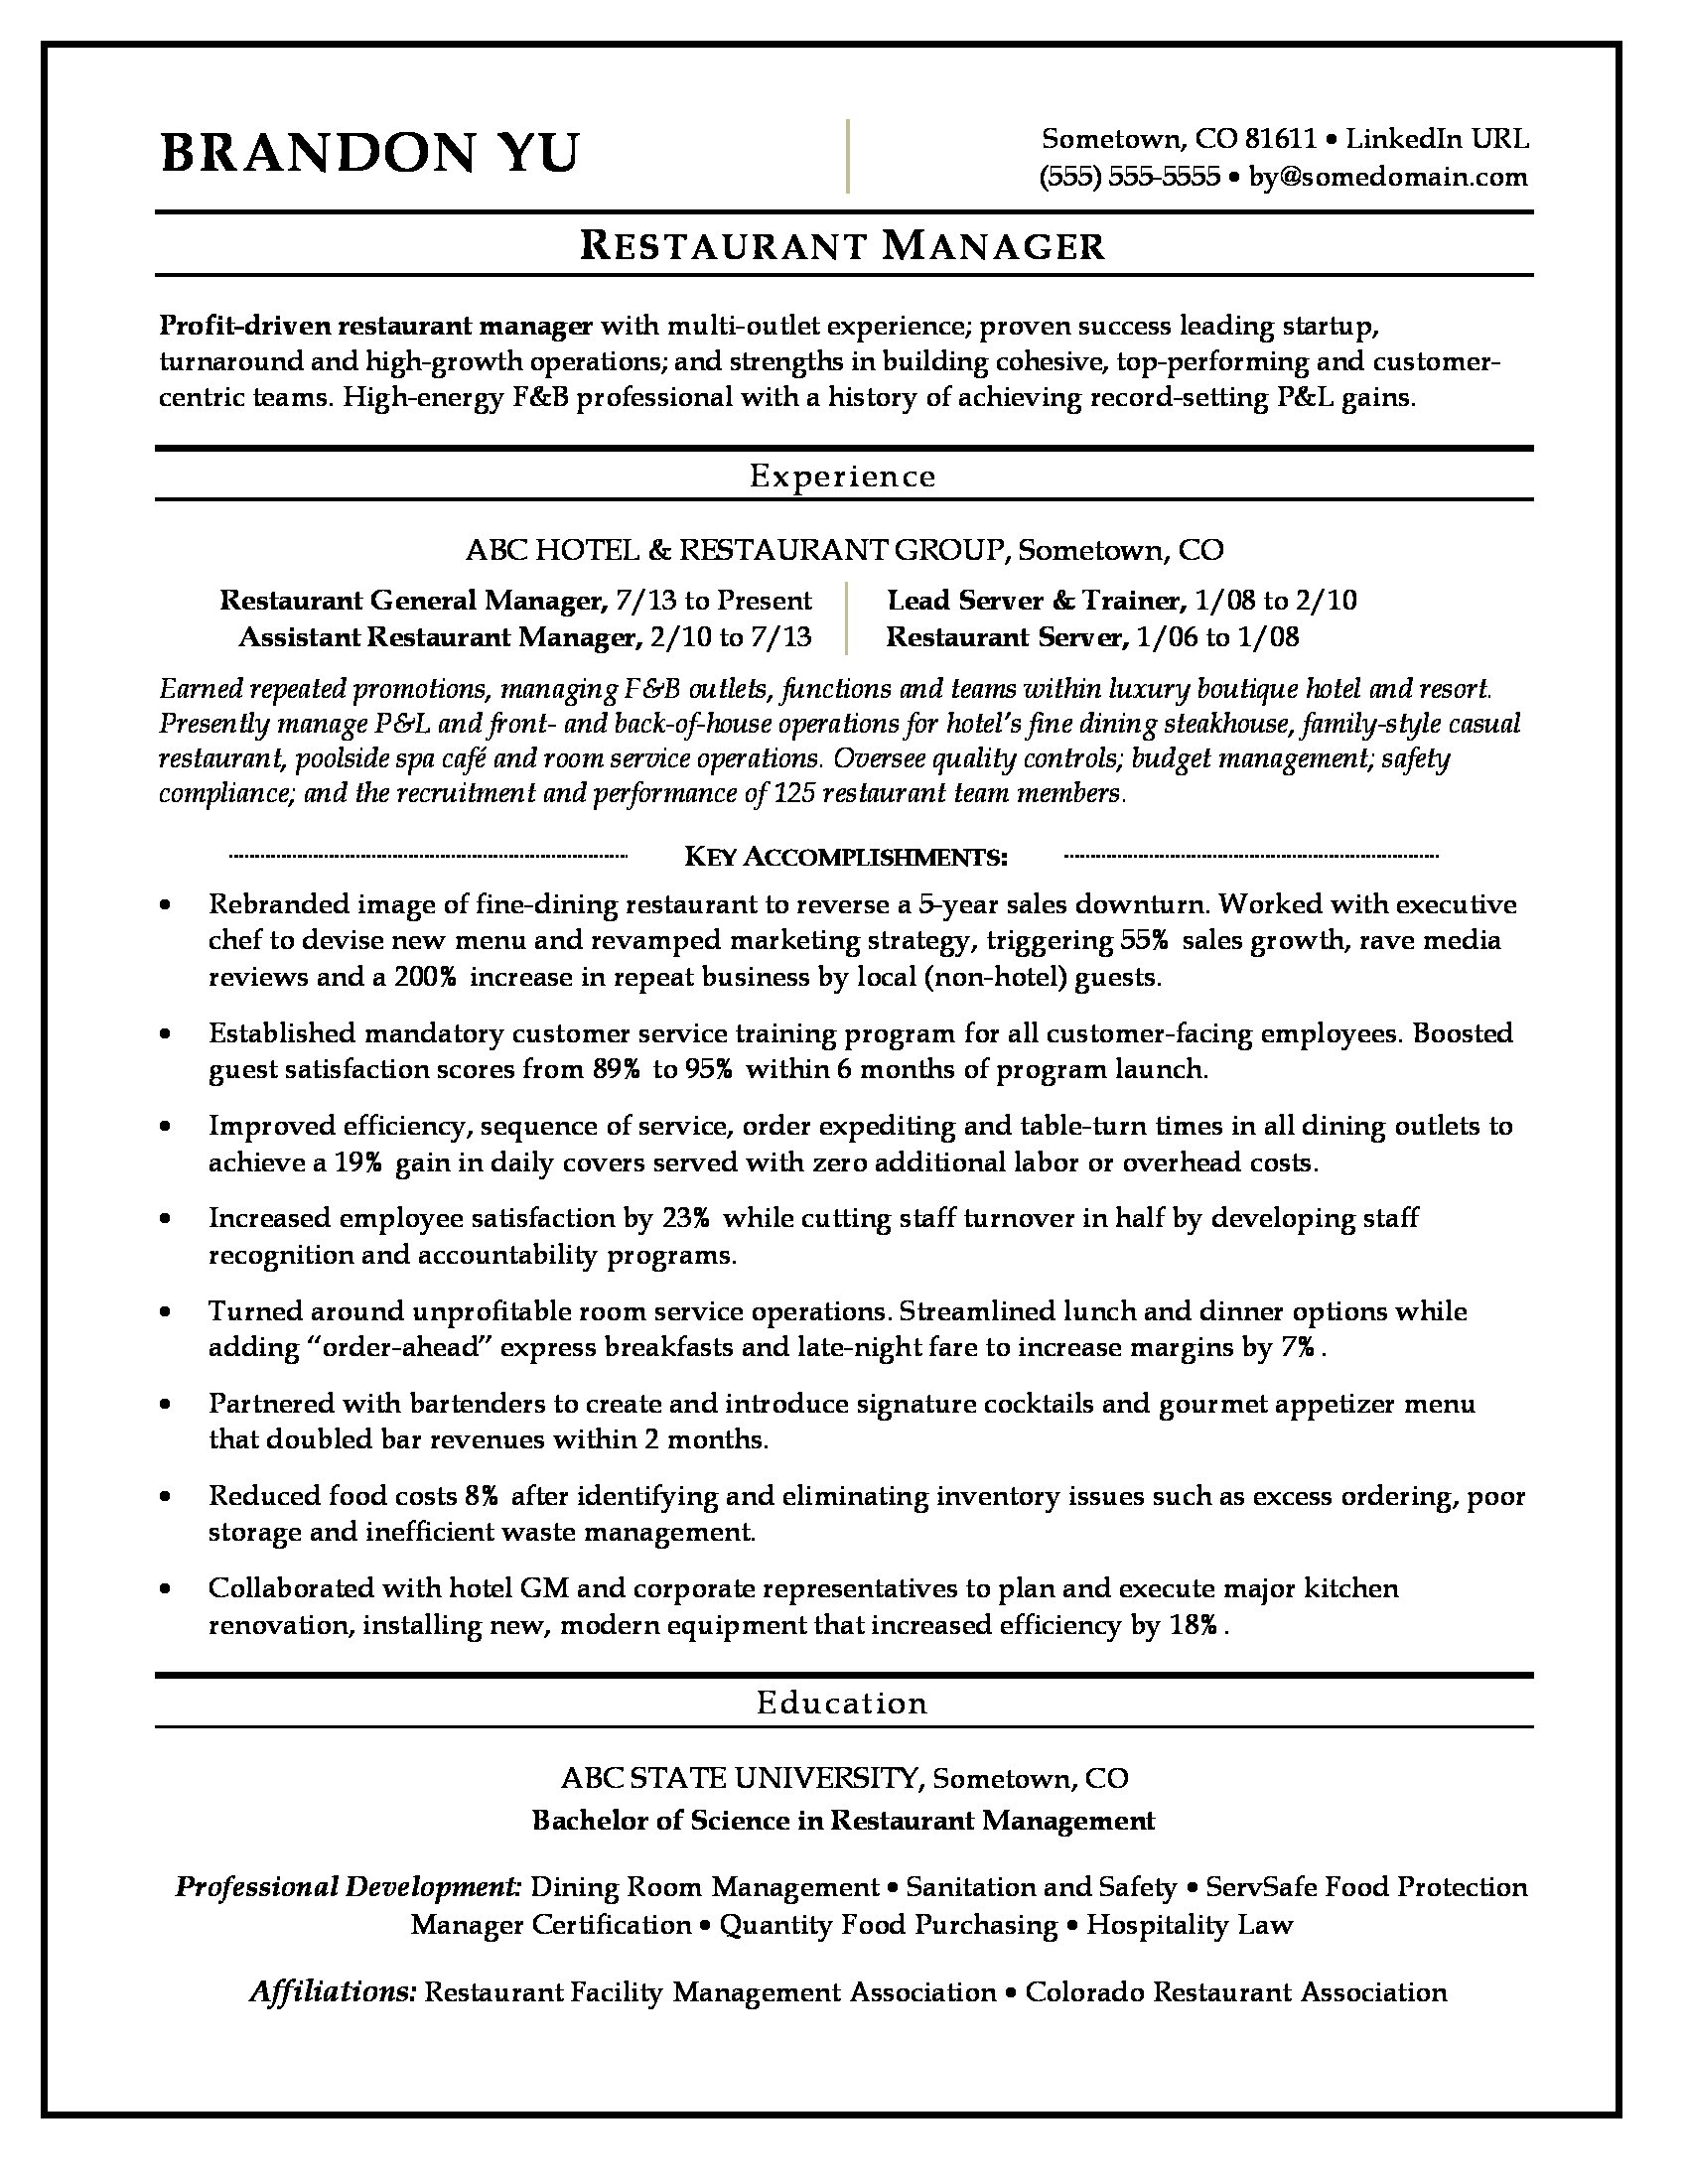 sample resume for a restaurant manager - Certification Manager Sample Resume